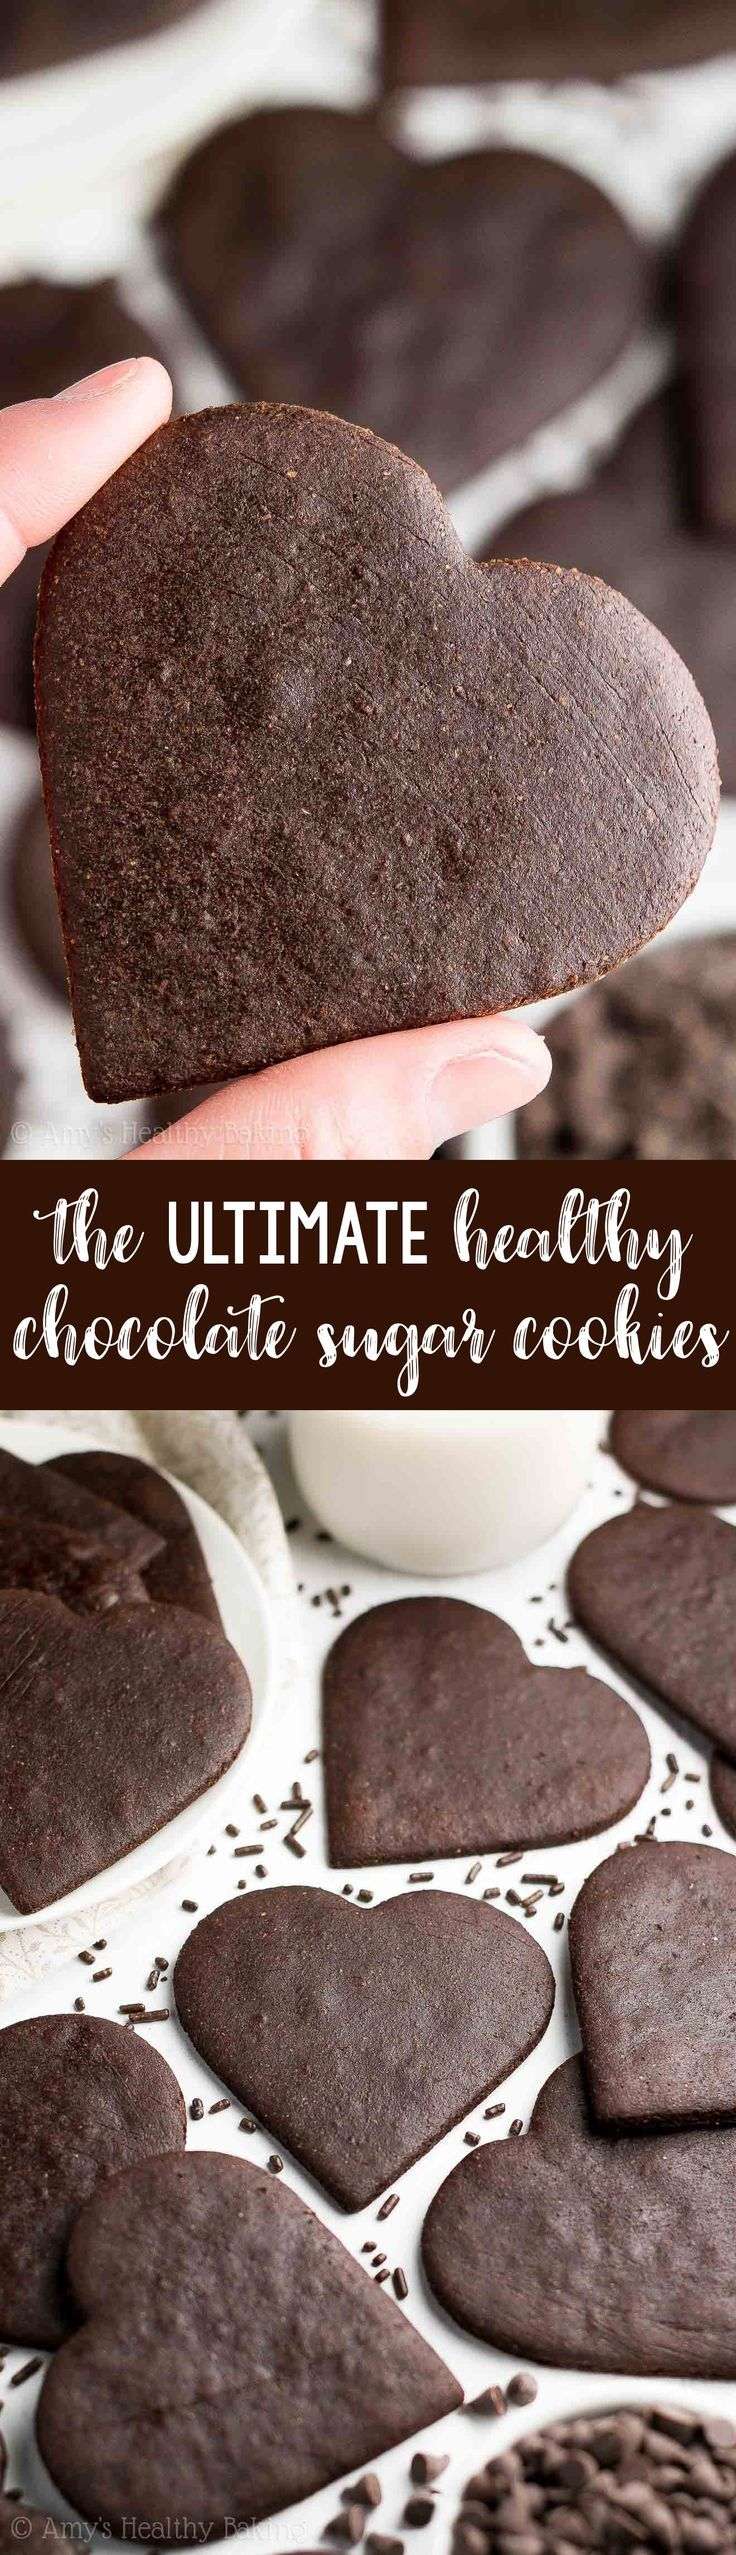 The ULTIMATE Healthy Chocolate Sugar Cookies! So rich & just 39 calories! They're soft, chewy & really easy to make. Truly the BEST! You'll never use another chocolate sugar cookie recipe again! | sugar cookies recipe | easy sugar cookies | gluten free sugar cookies | cut out sugar cookies